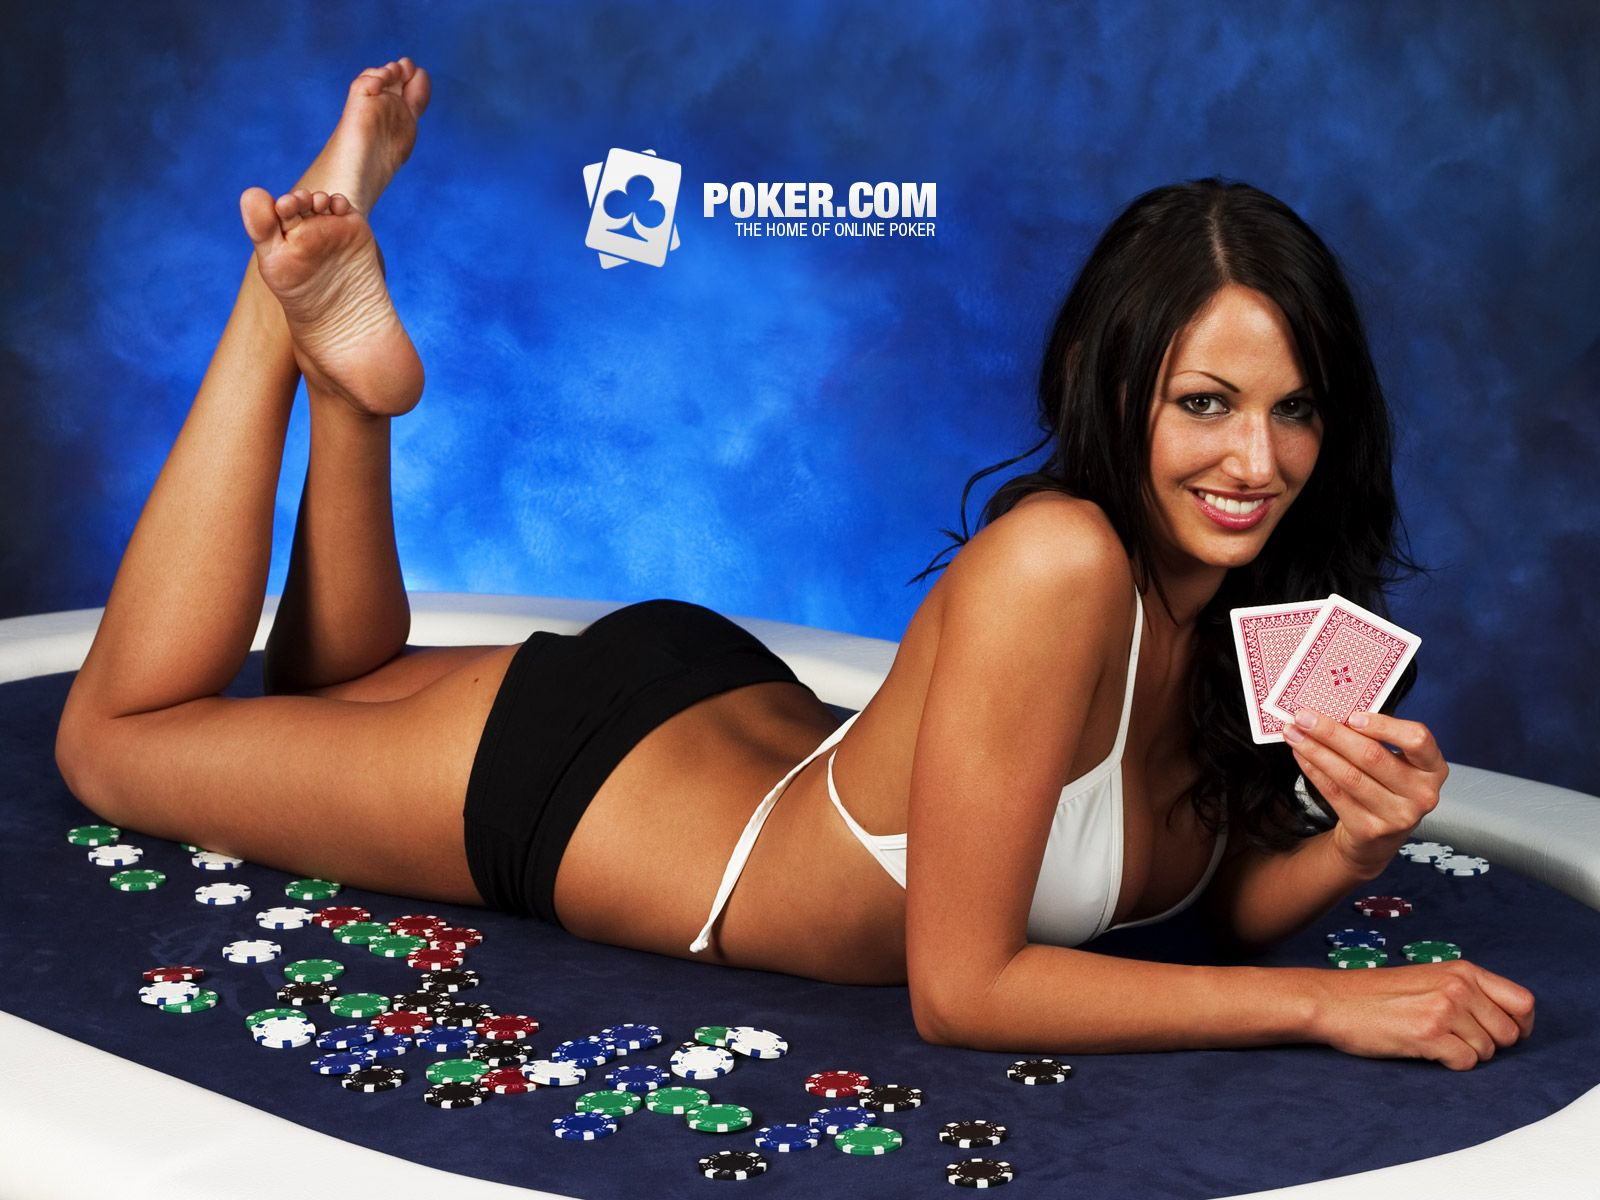 Play 10s or Better Poker Online at Casino.com India